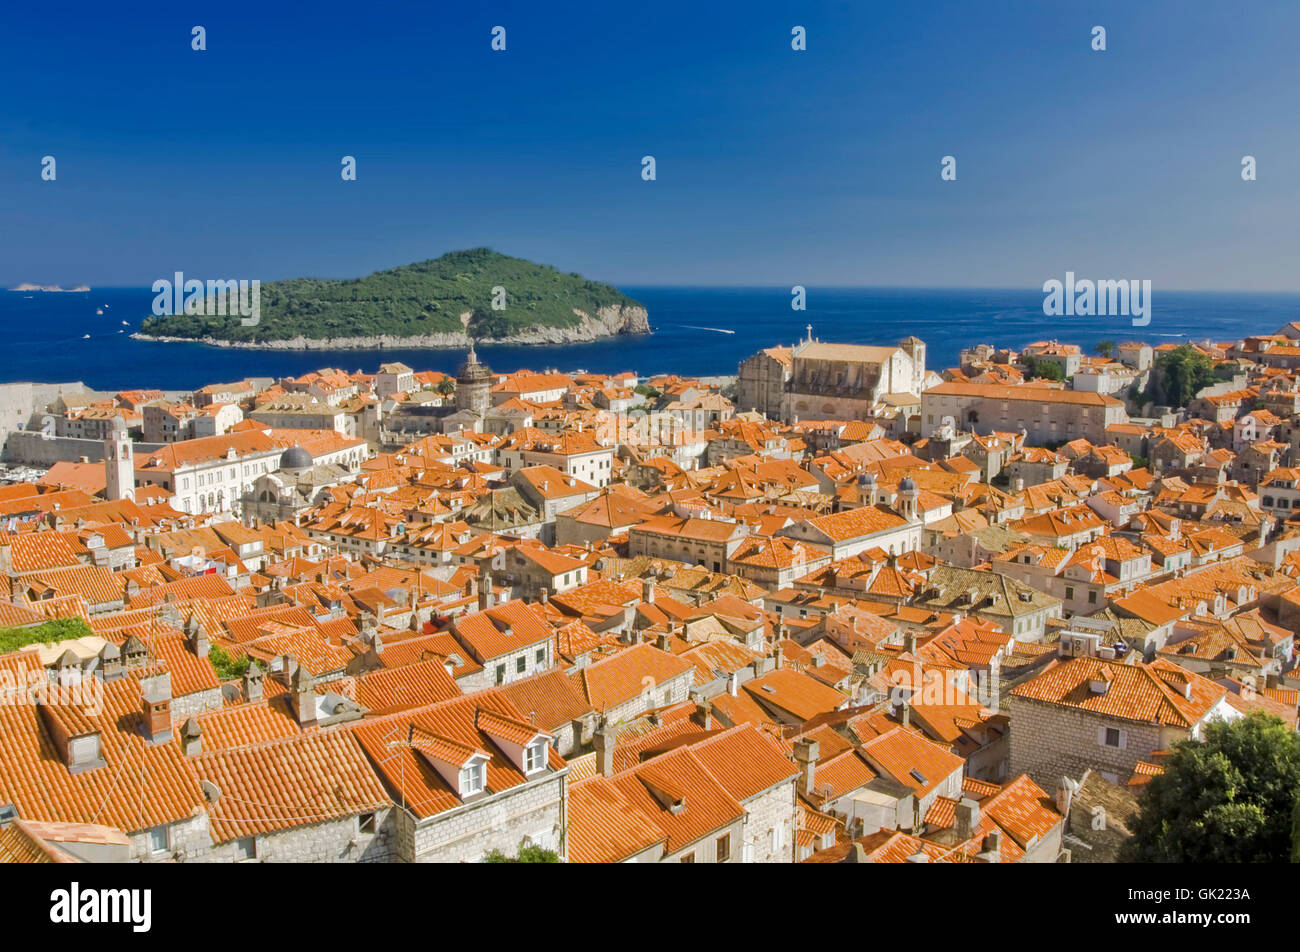 old town summer summerly - Stock Image